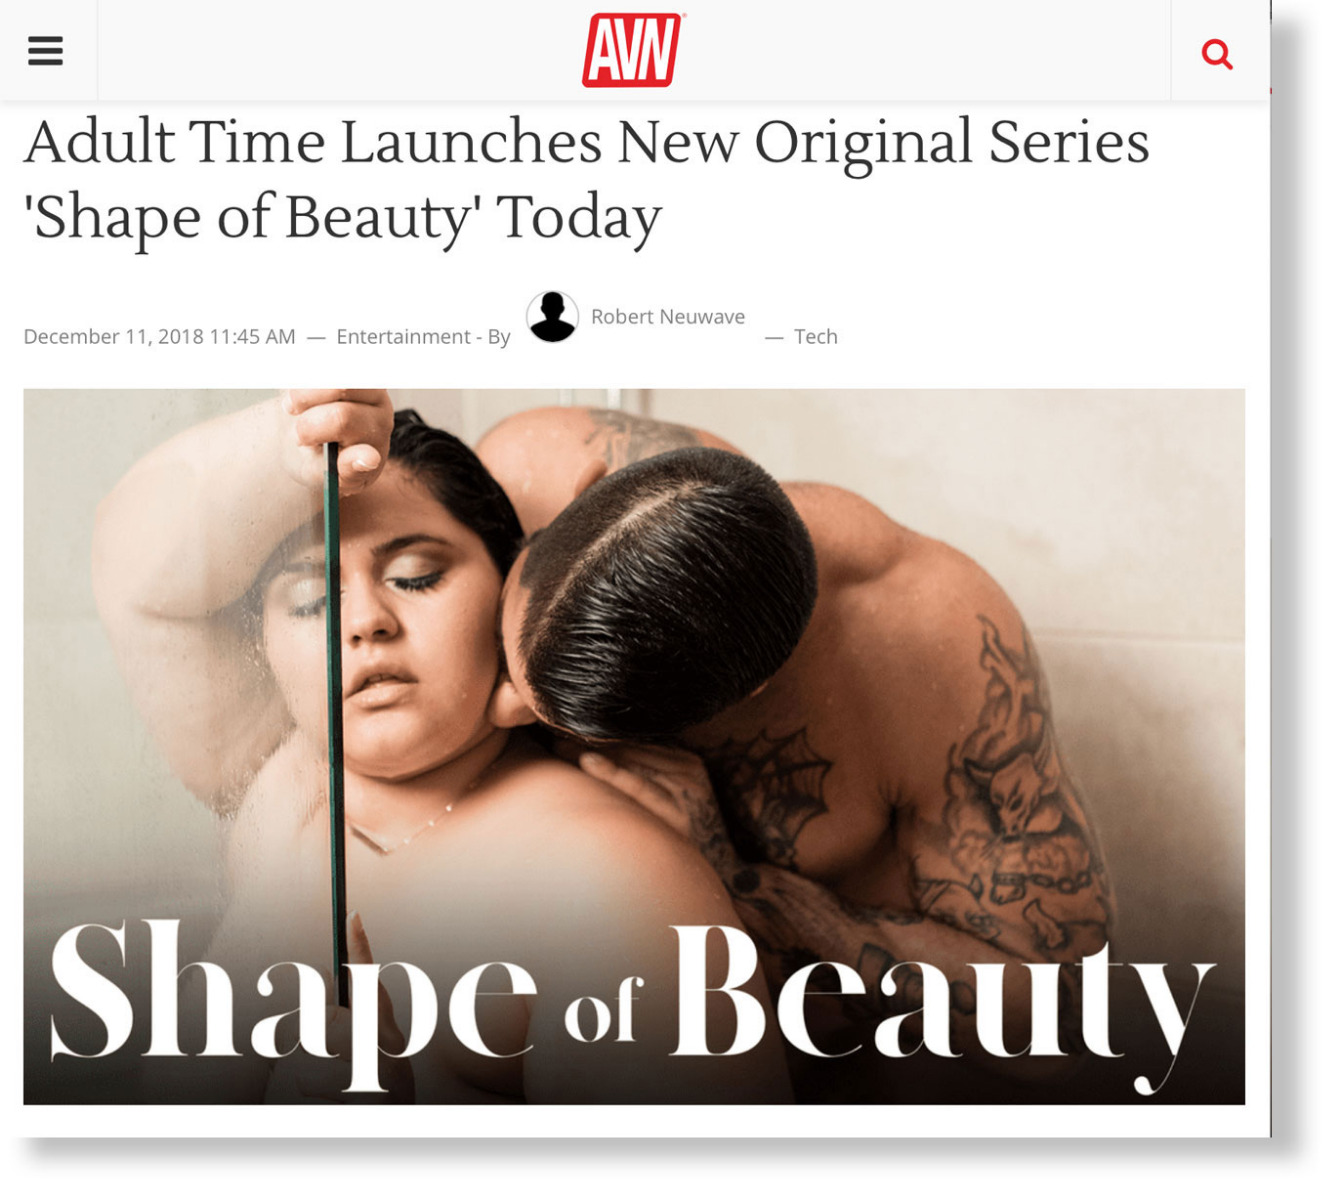 AVN Shape of Beauty